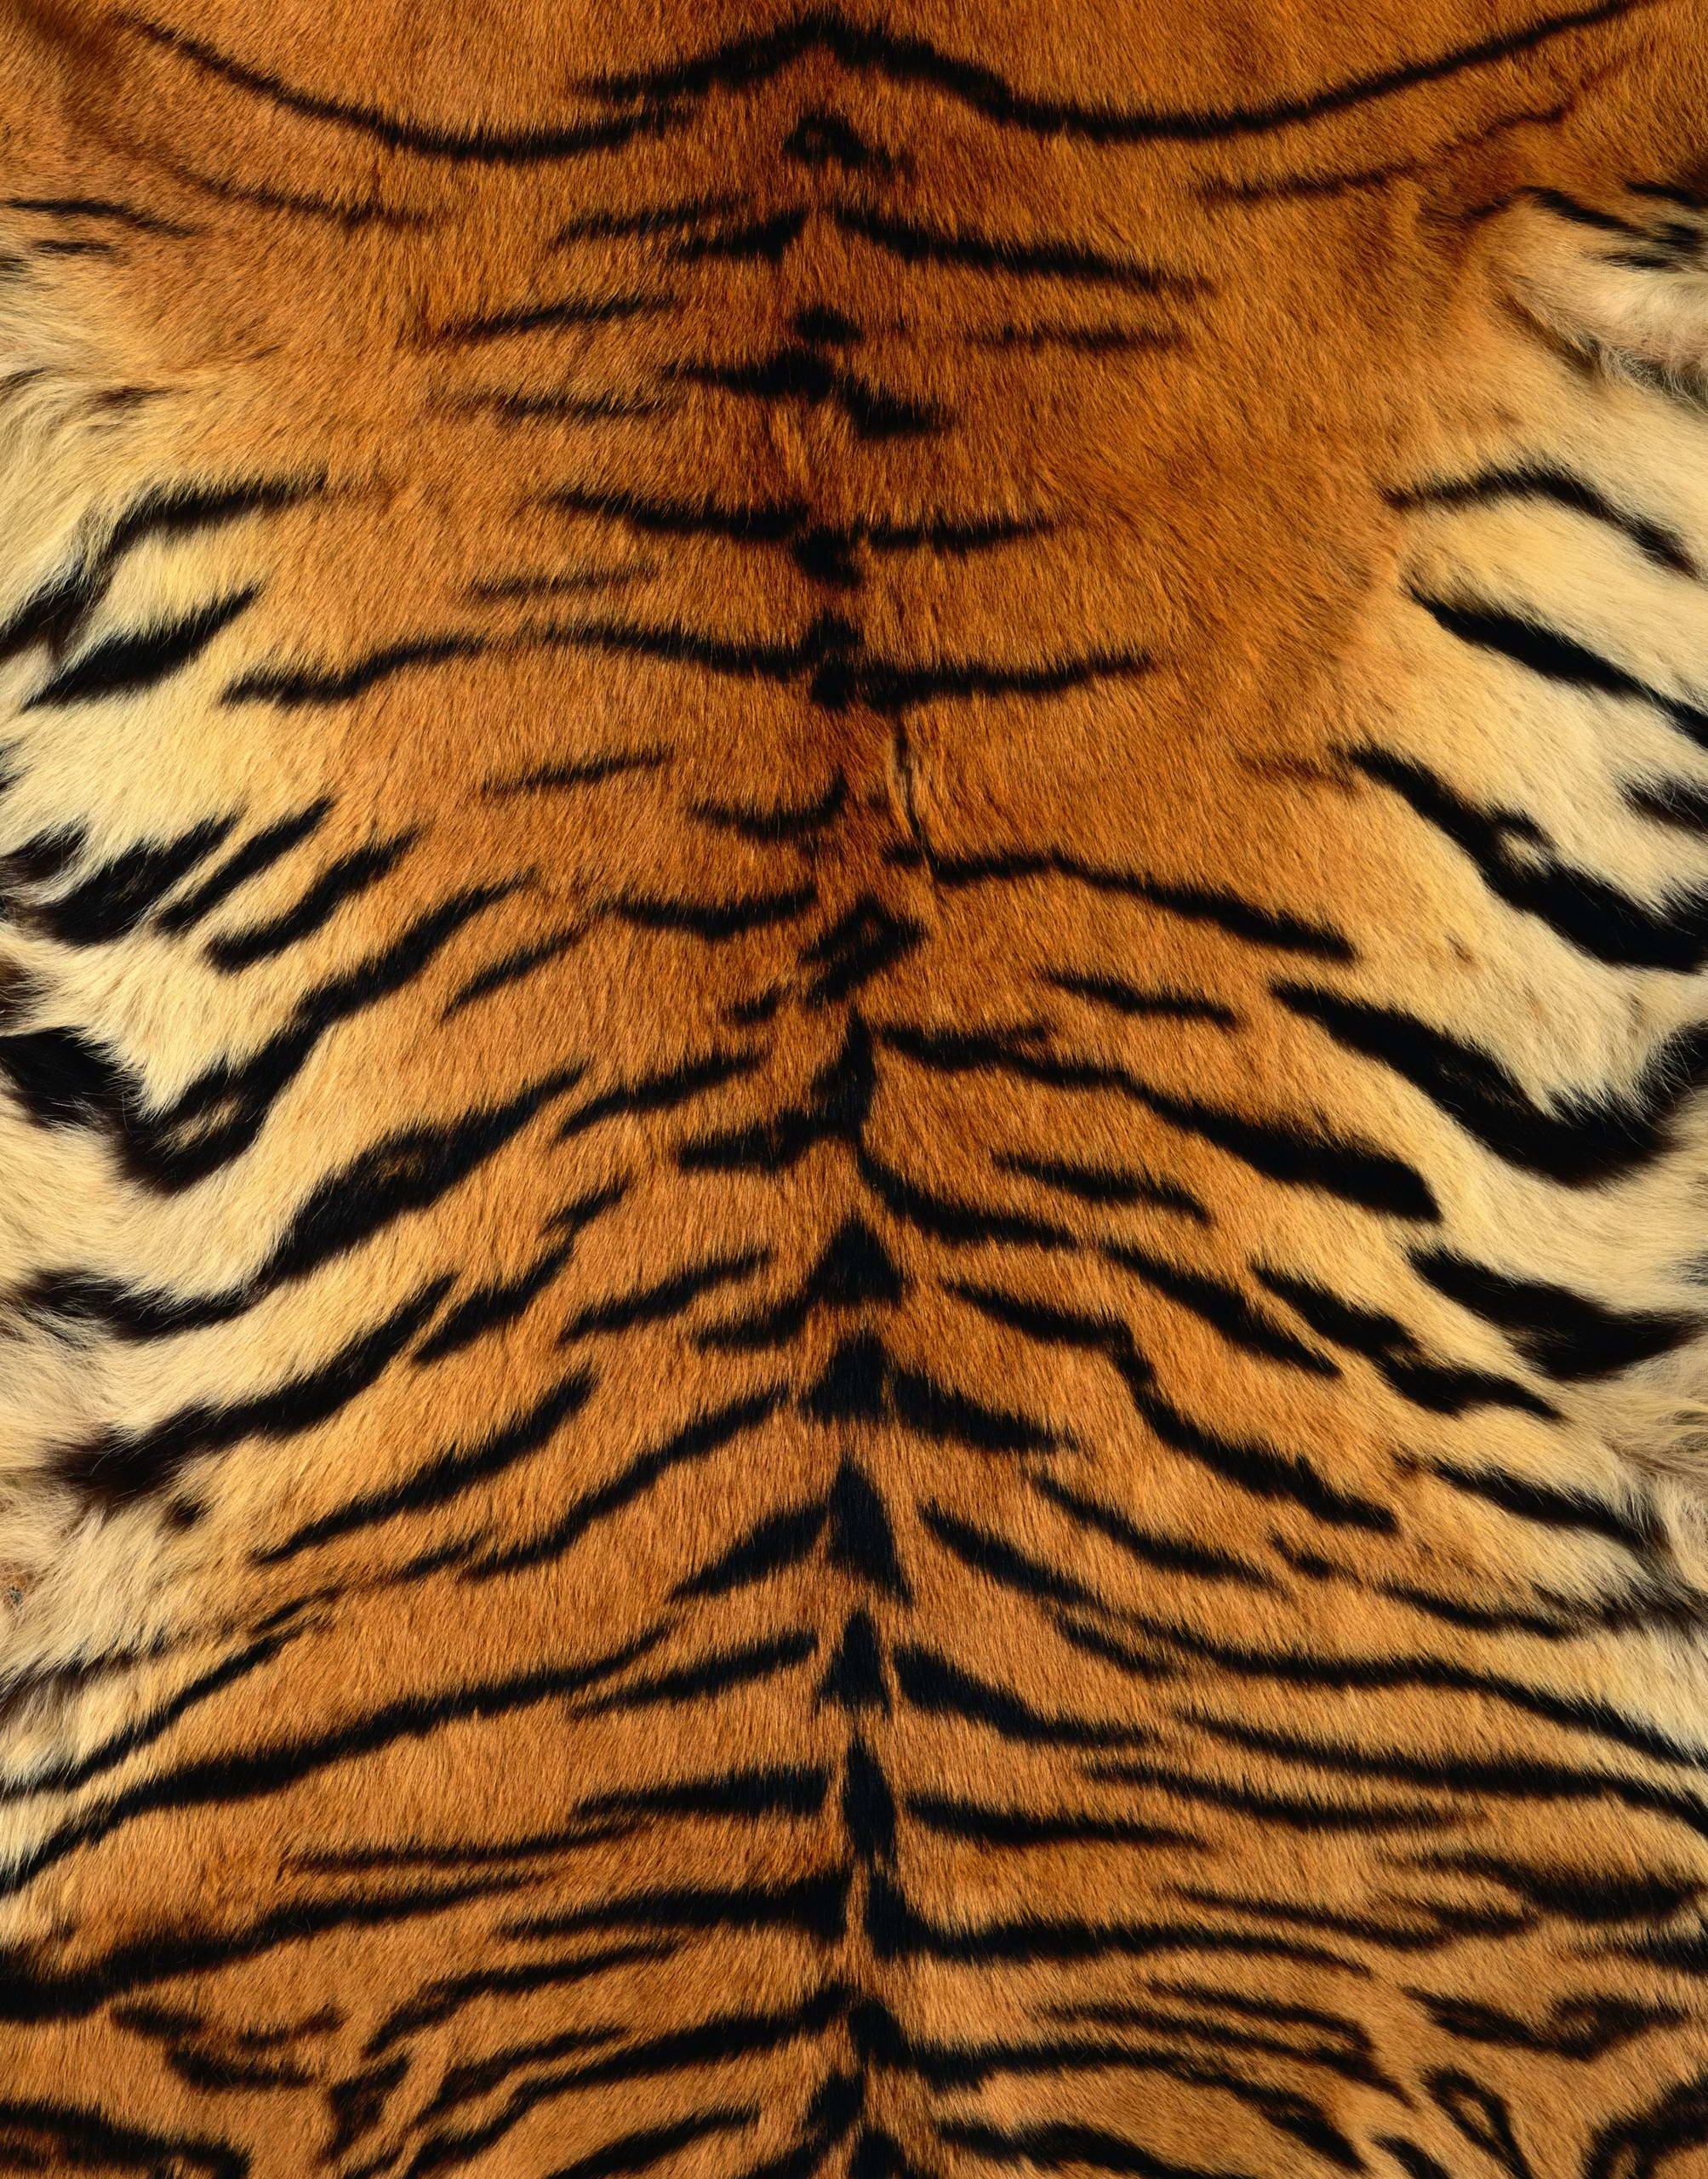 , skin tiger , download photo, texture fur, tiger fur texture background, background